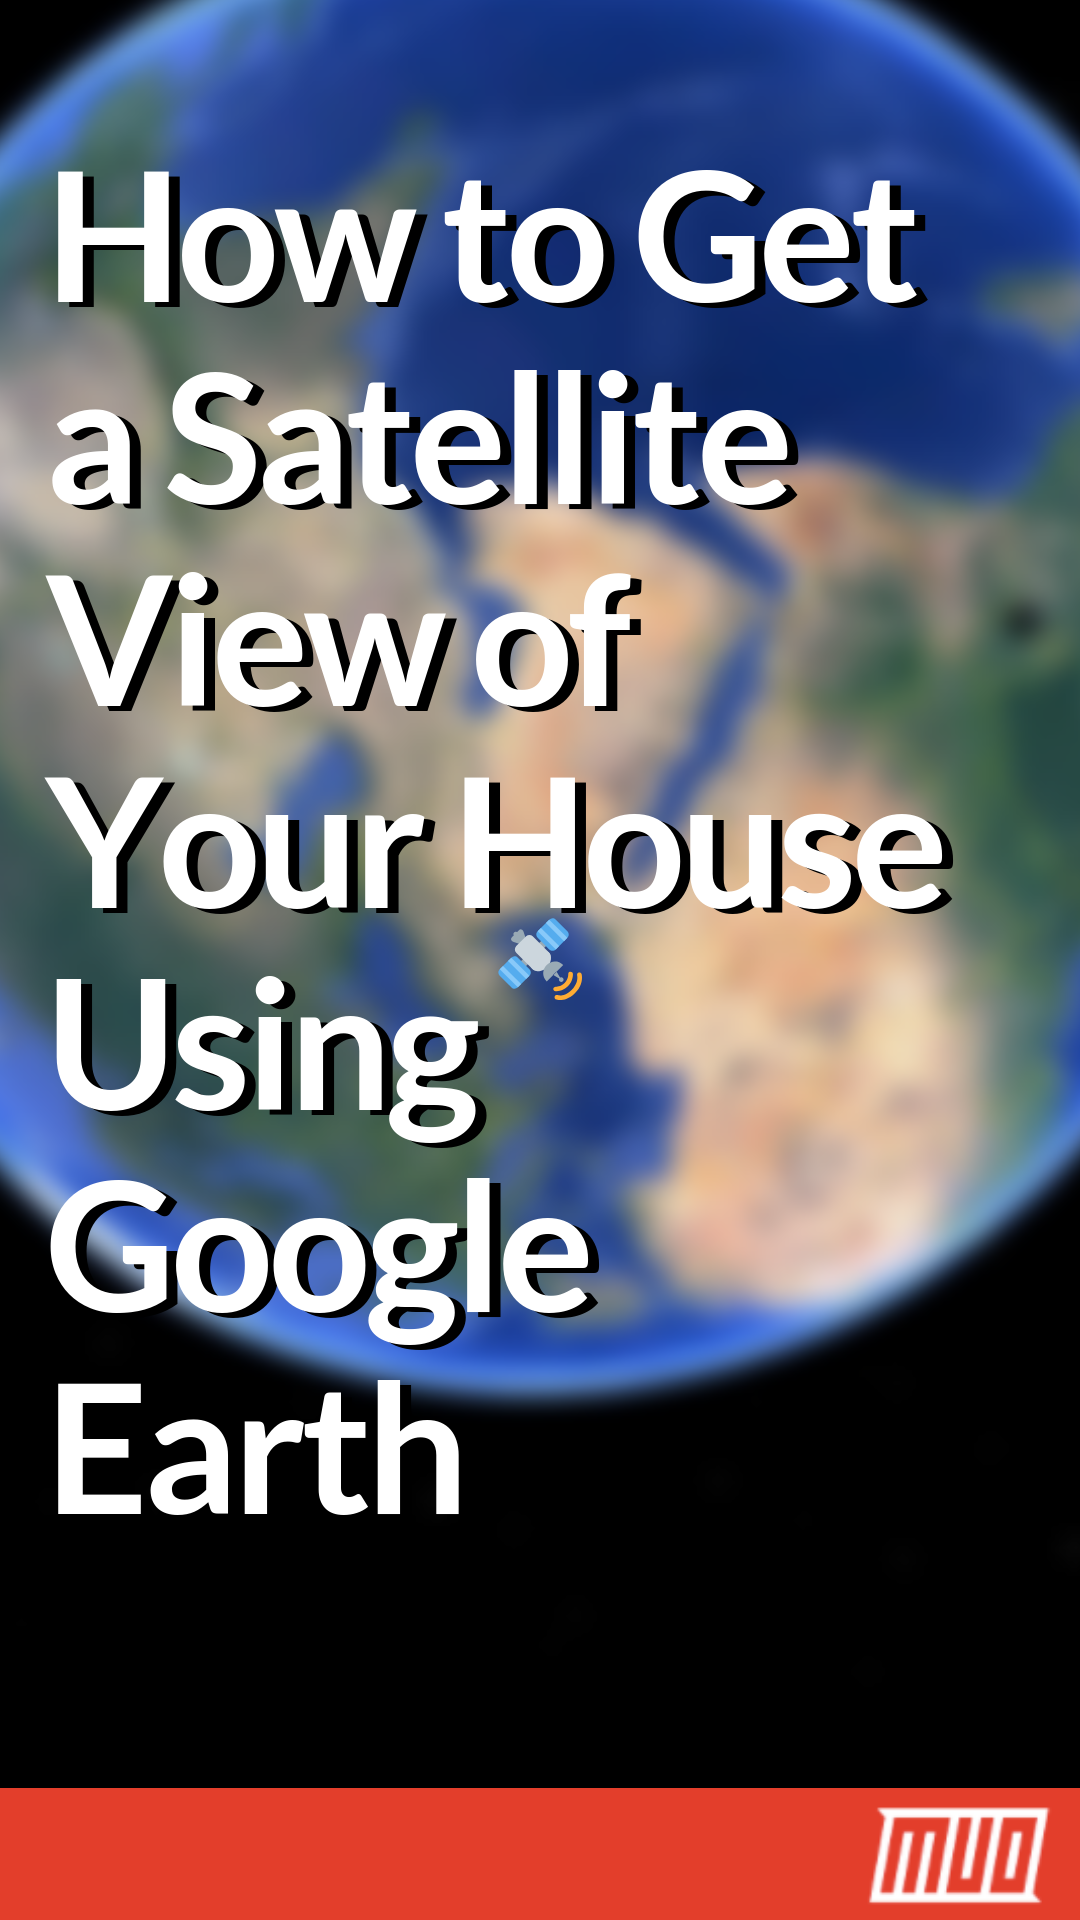 How to Get a Satellite View of Your House Using Google Earth ... Satellite View Google Maps on google map maker, google maps pacific northwest, google moon, google search, google translate, satellite map images with missing or unclear data, google sky, google maps watsonville, google maps via satellite, google my home aerial view, google docs, google maps earth, google satellite home search, google latitude, google satellite united states, yahoo! maps, google maps allentown pennsylvania, google earth home, google mars, google maps road map, google maps navigation, google maps glitches, google air view, web mapping, google street view, google maps bike trails, google maps sea of galilee, google voice, bing maps, google chrome, google maps southeast united states, google maps etobicoke, google goggles, google maps hybrid mode, route planning software, google earth,